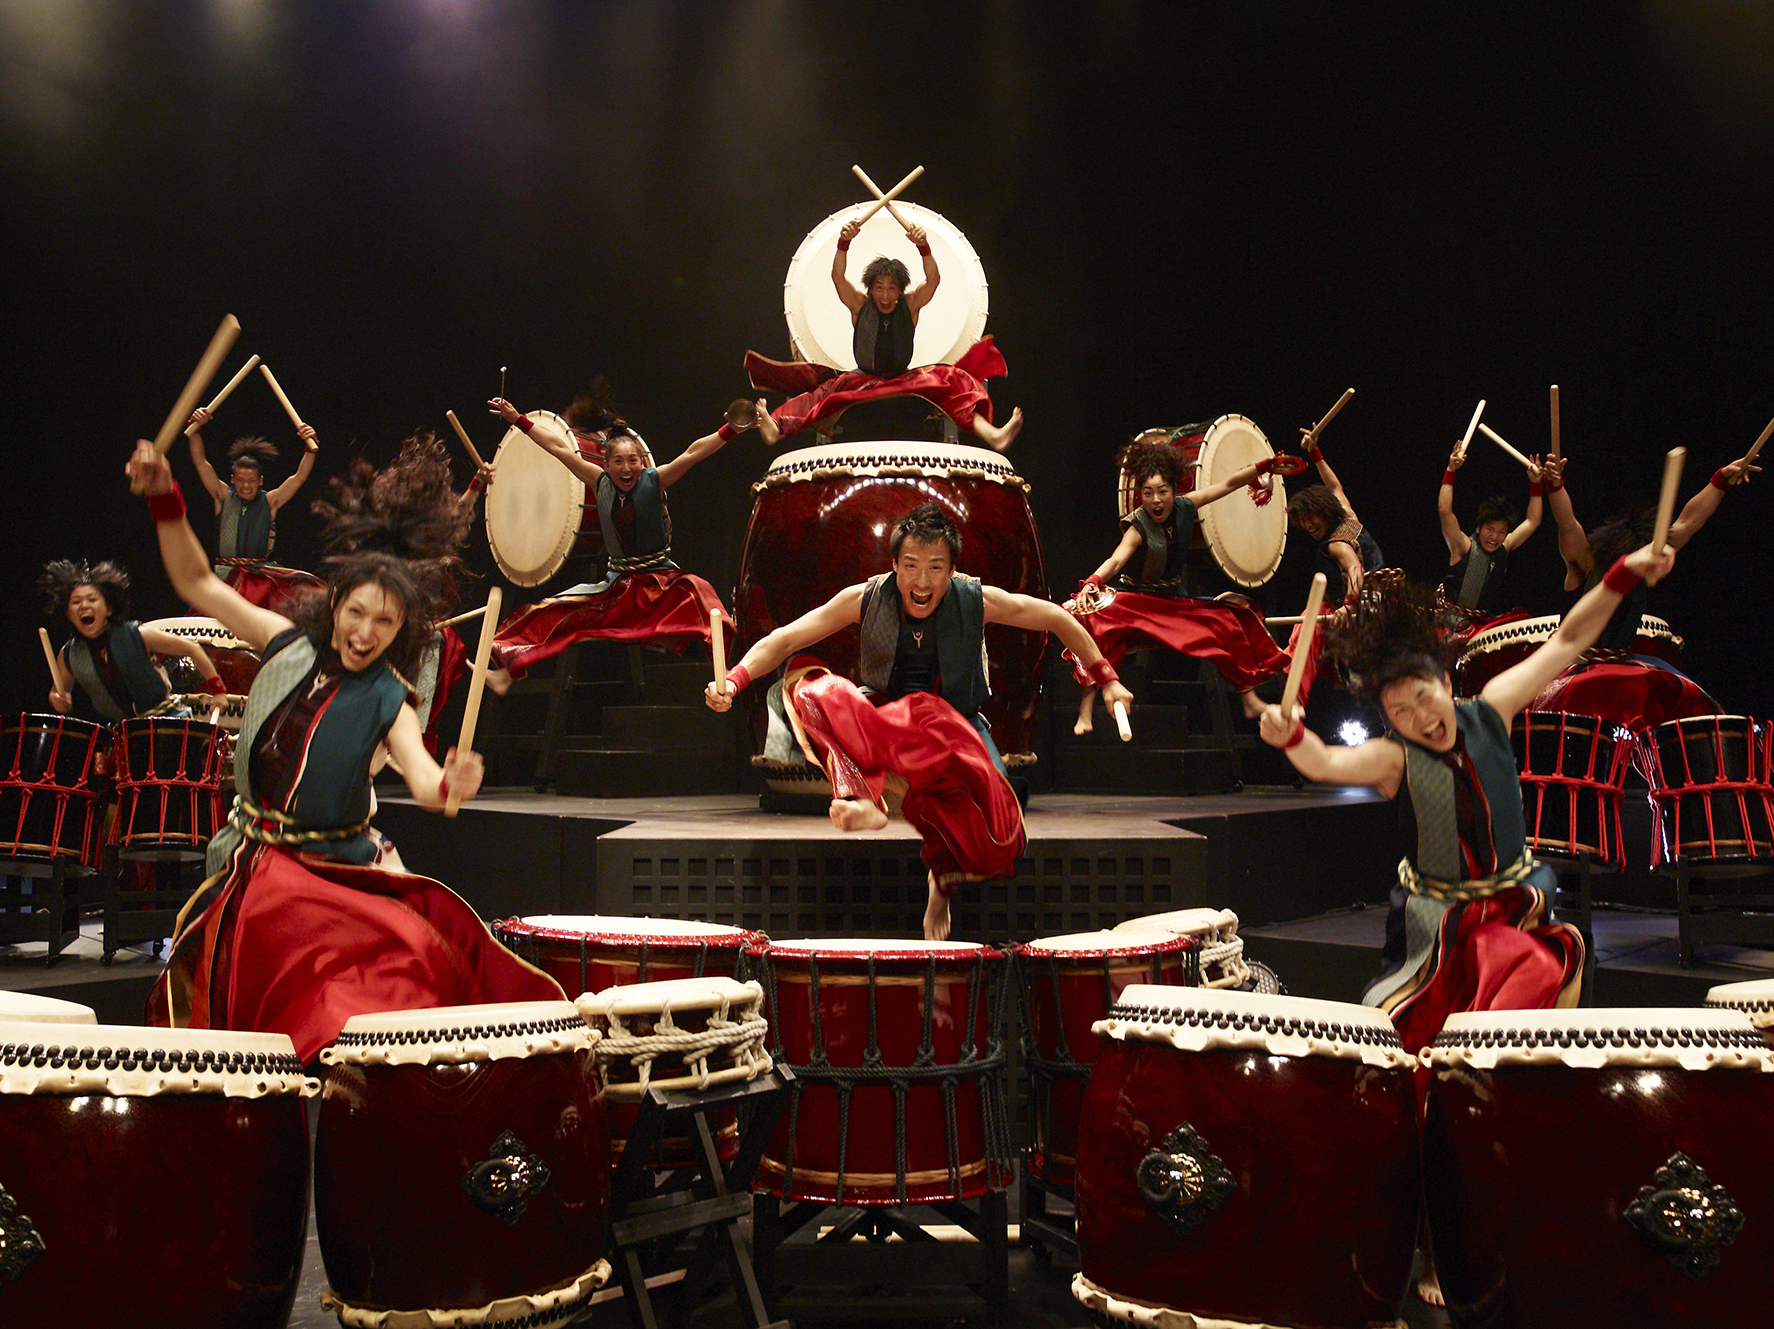 Japanese drummers photos 37